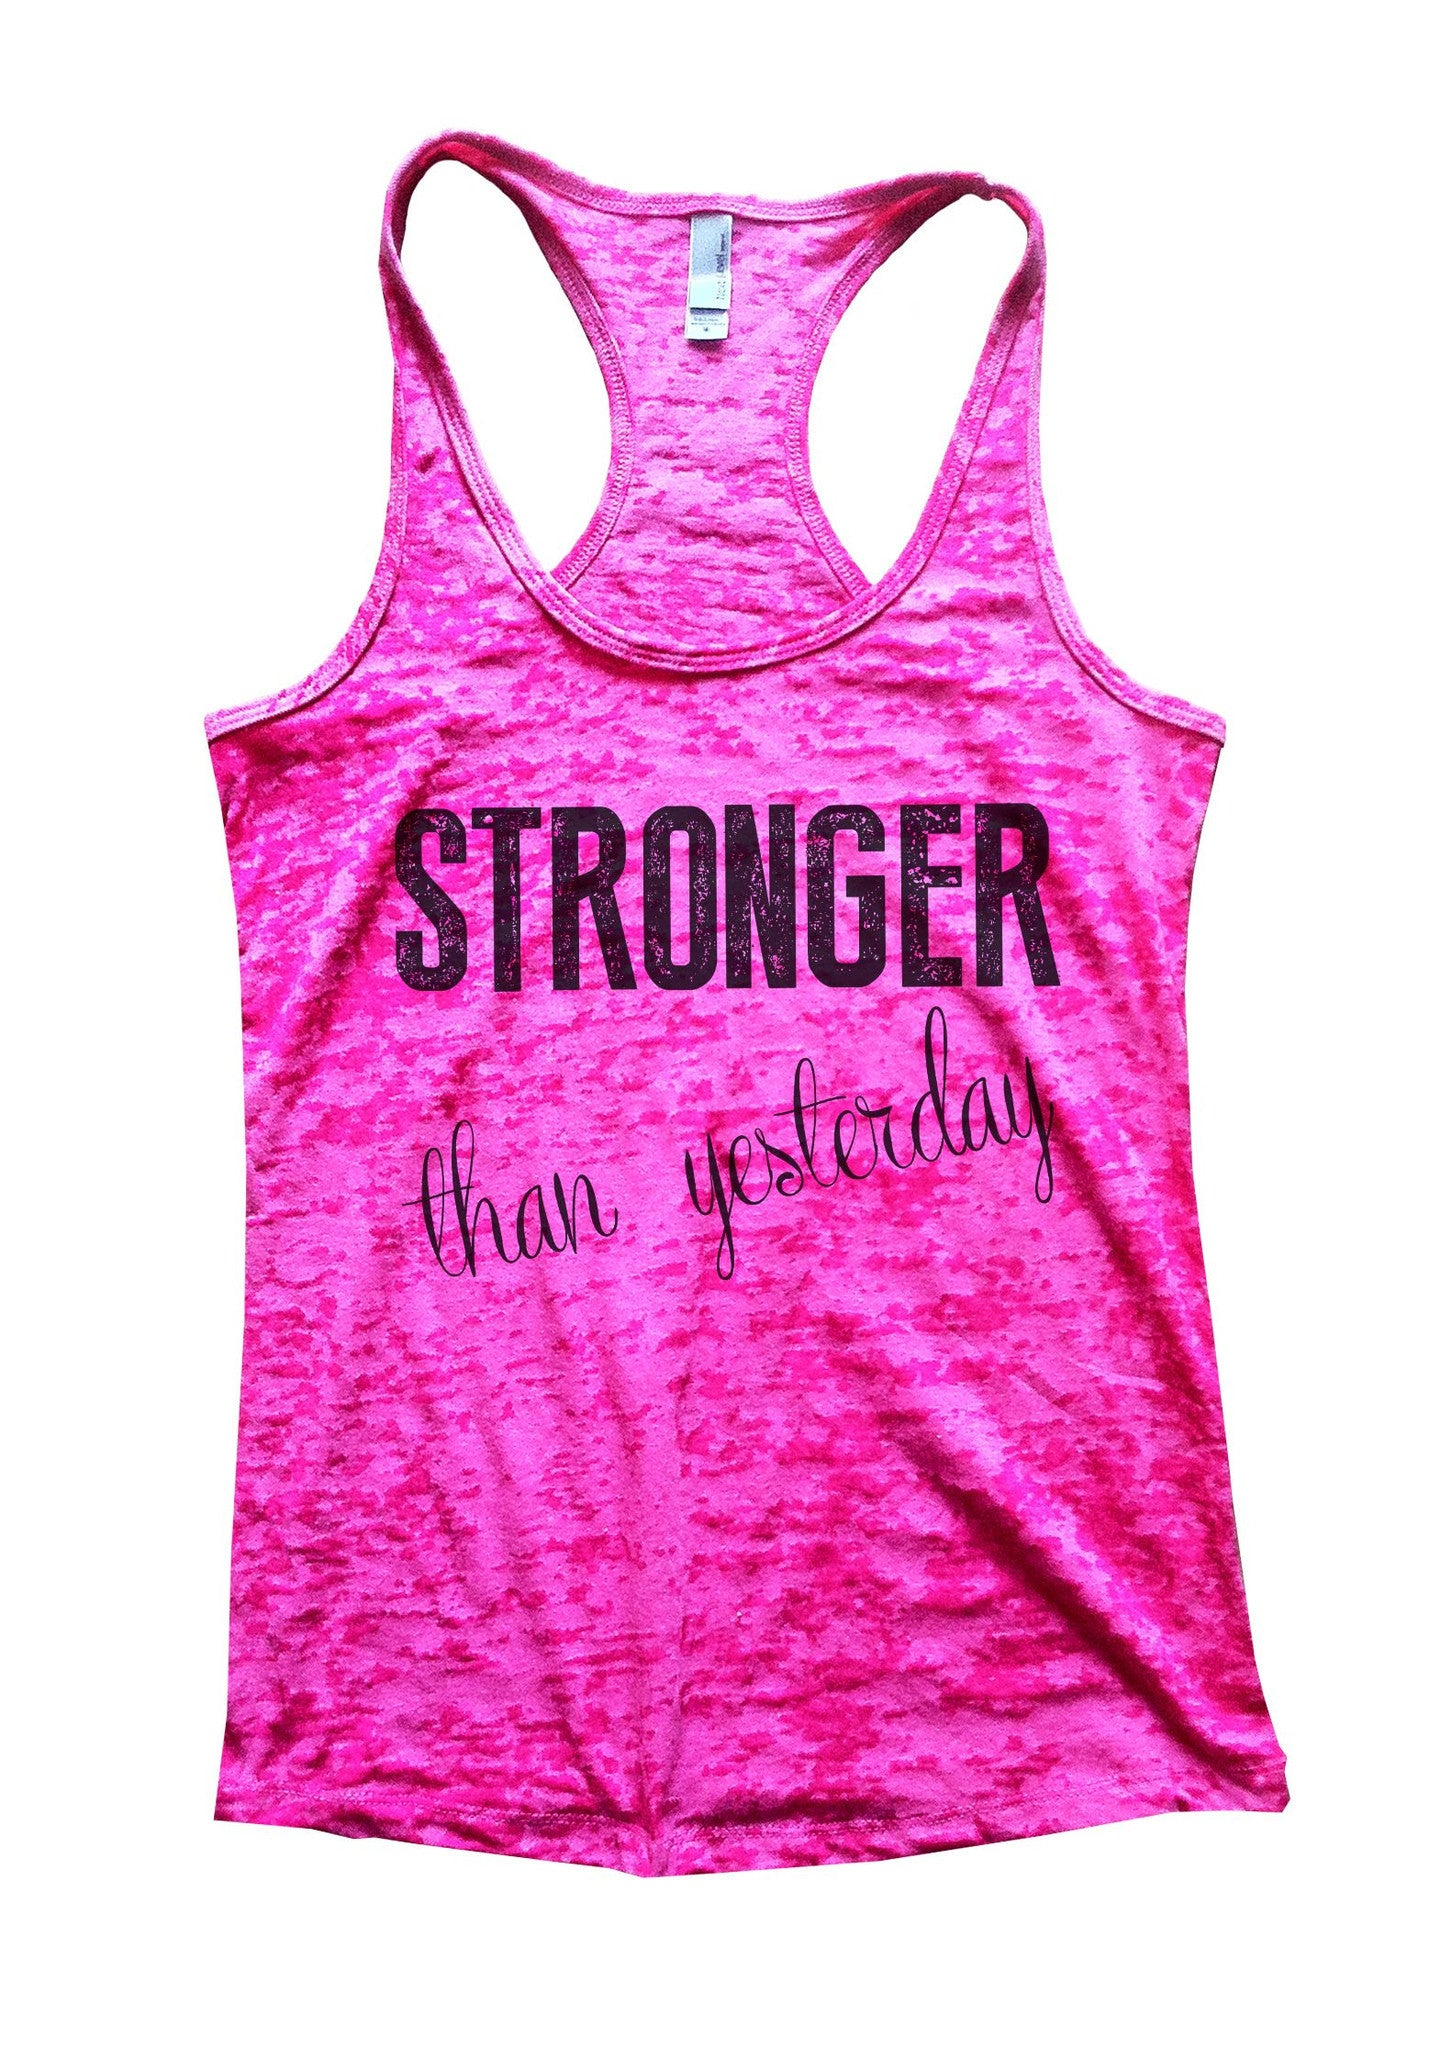 Stronger Than Yesterday Burnout Tank Top By BurnoutTankTops.com - 768 - Funny Shirts Tank Tops Burnouts and Triblends  - 5